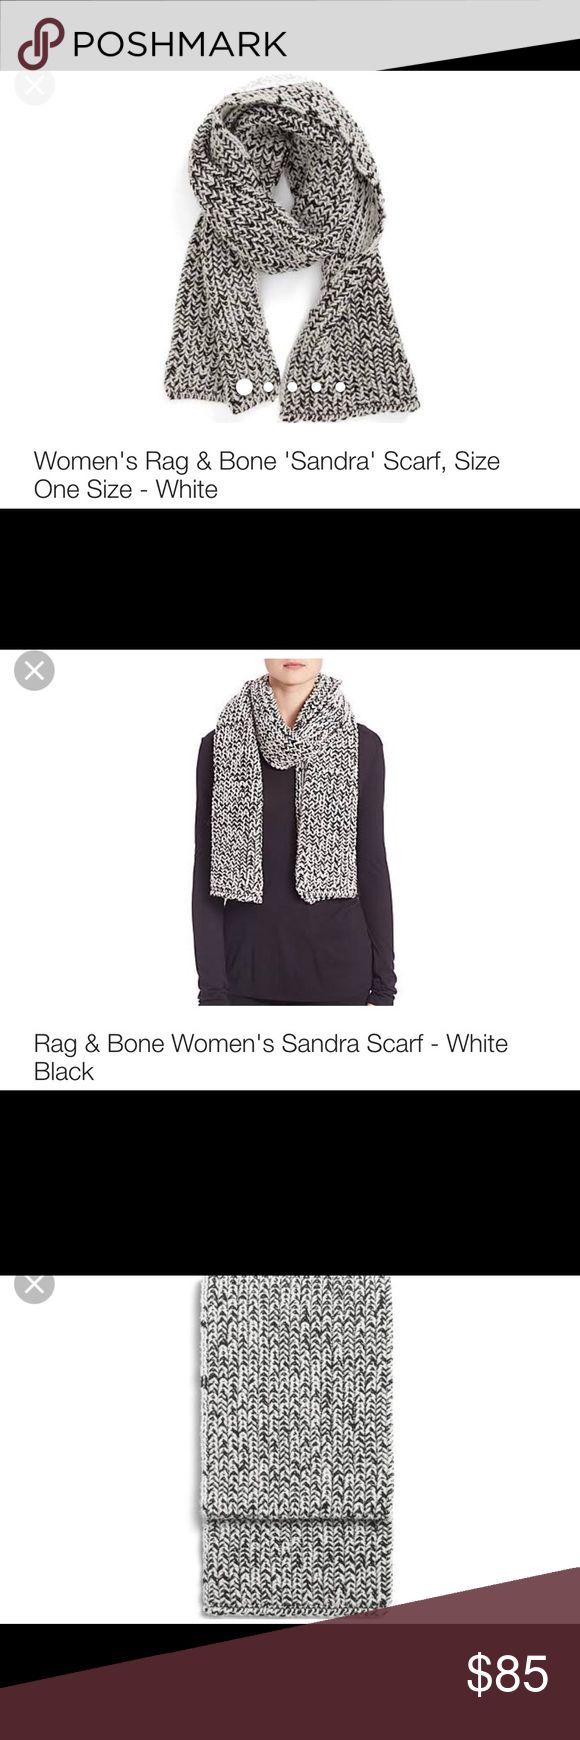 Rag and bone Sandra scarf Only worn 1x was a Christmas gift but I already have so many just like it.  Nice and heavy! rag & bone Accessories Scarves & Wraps